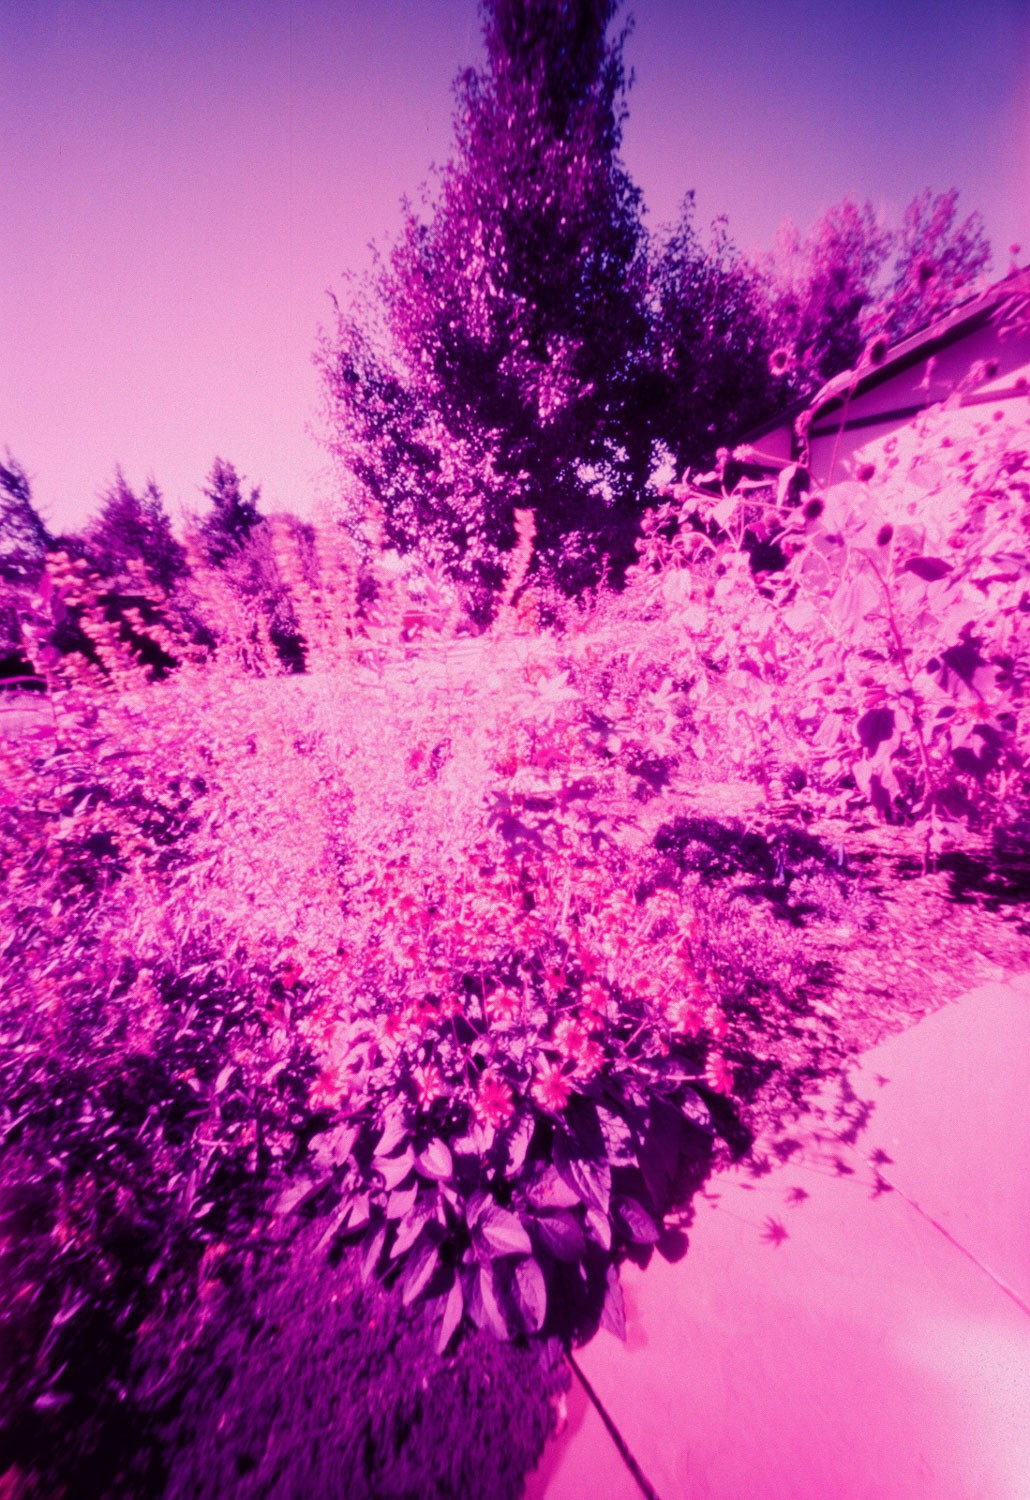 Figure 10 - LomoChrome Purple XR 100-400 - Pinhole (30 seconds)